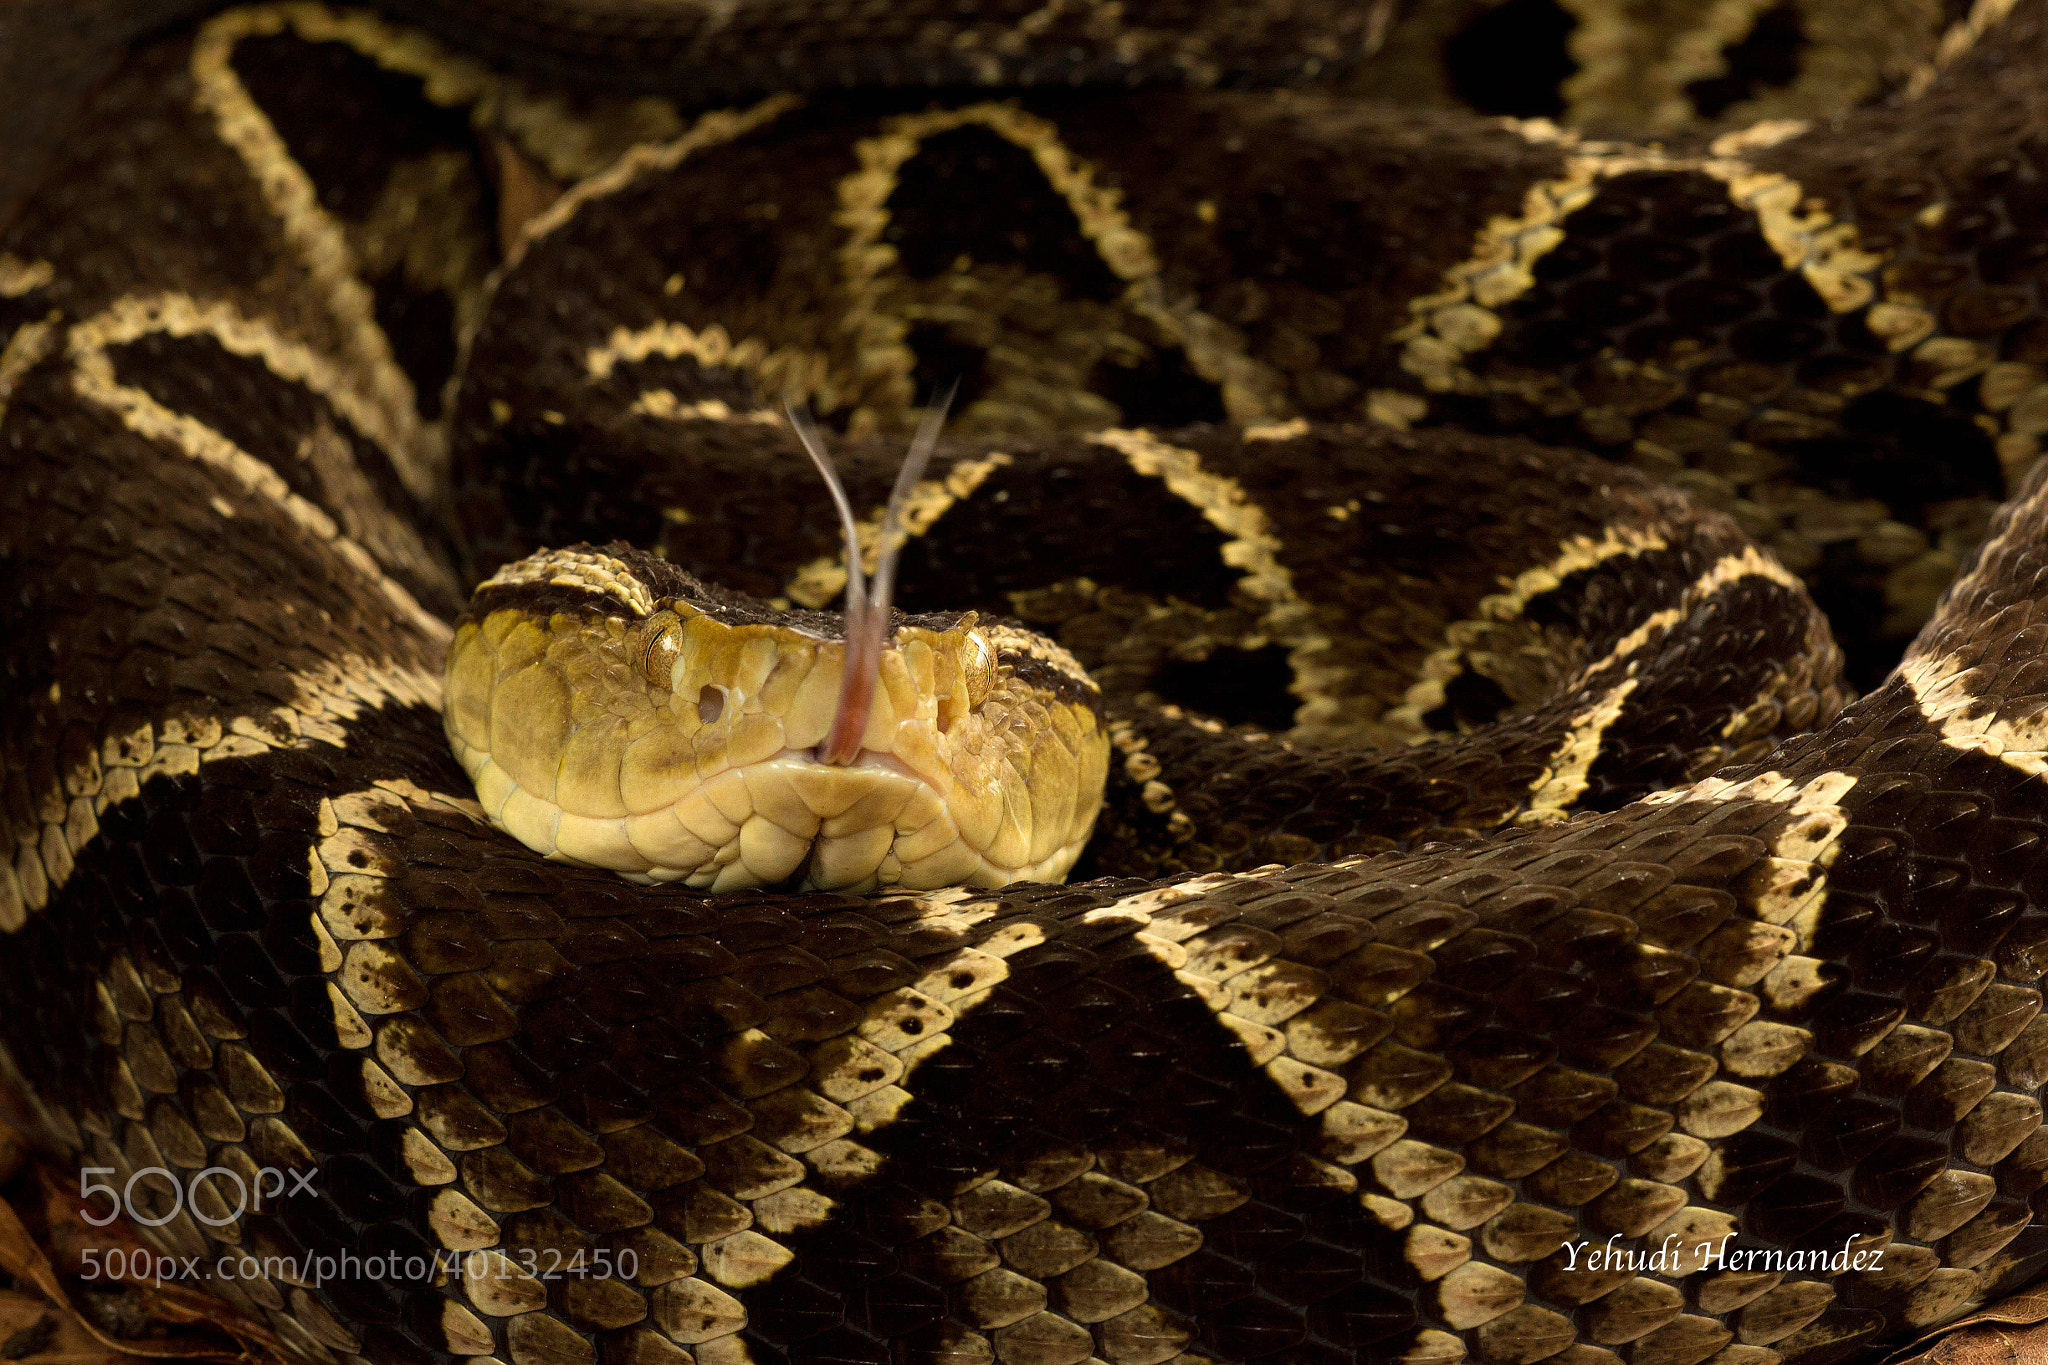 Photograph Fer de lance (Bothrops asper) by Yehudi  Hernandez on 500px